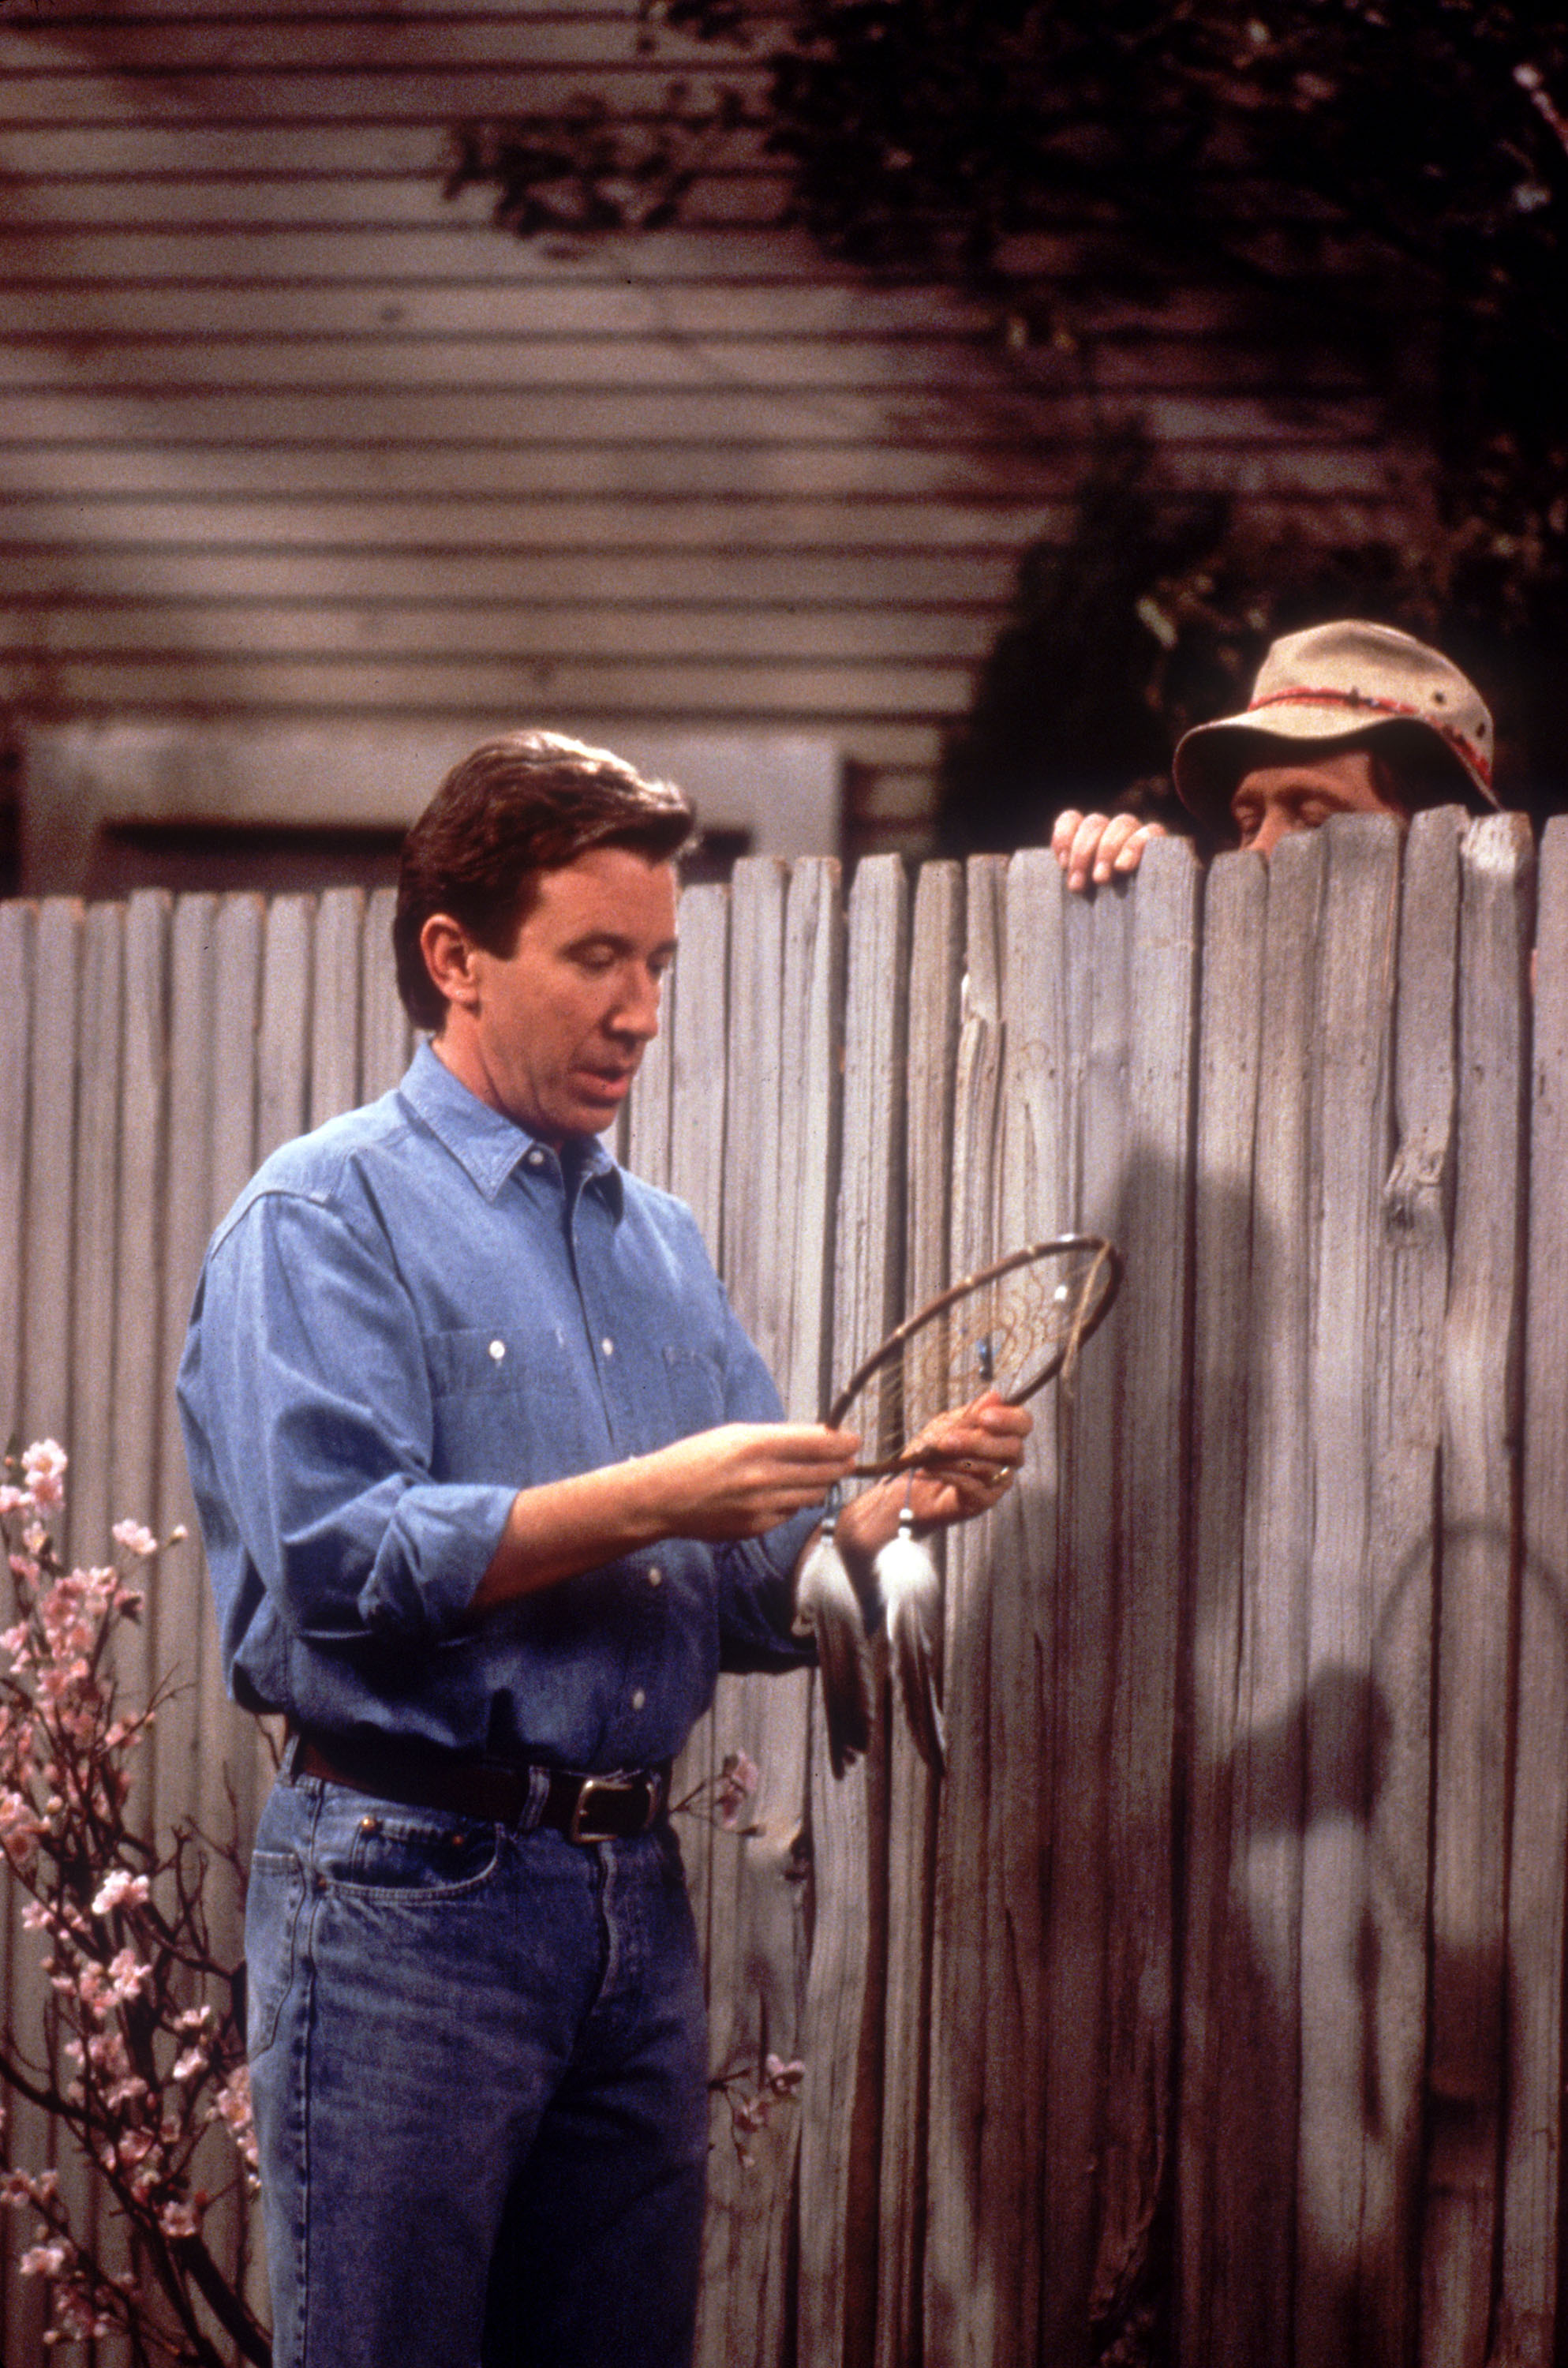 Home-Improvement-home-improvement-tv-show-33059008-1987-3000.jpg